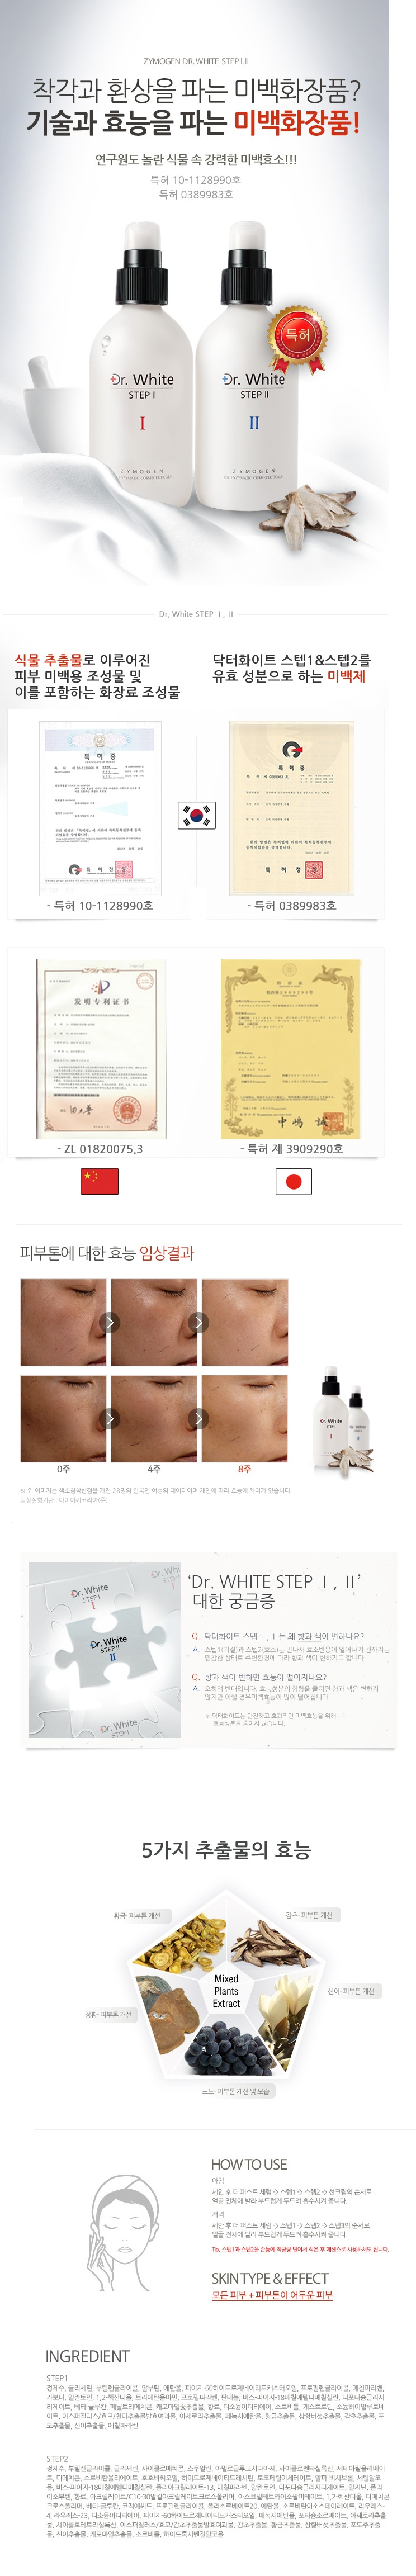 Zymogen Dr. White Step 1 and 2 korean cosmetic skincar product online shop malaysia brazil macau1